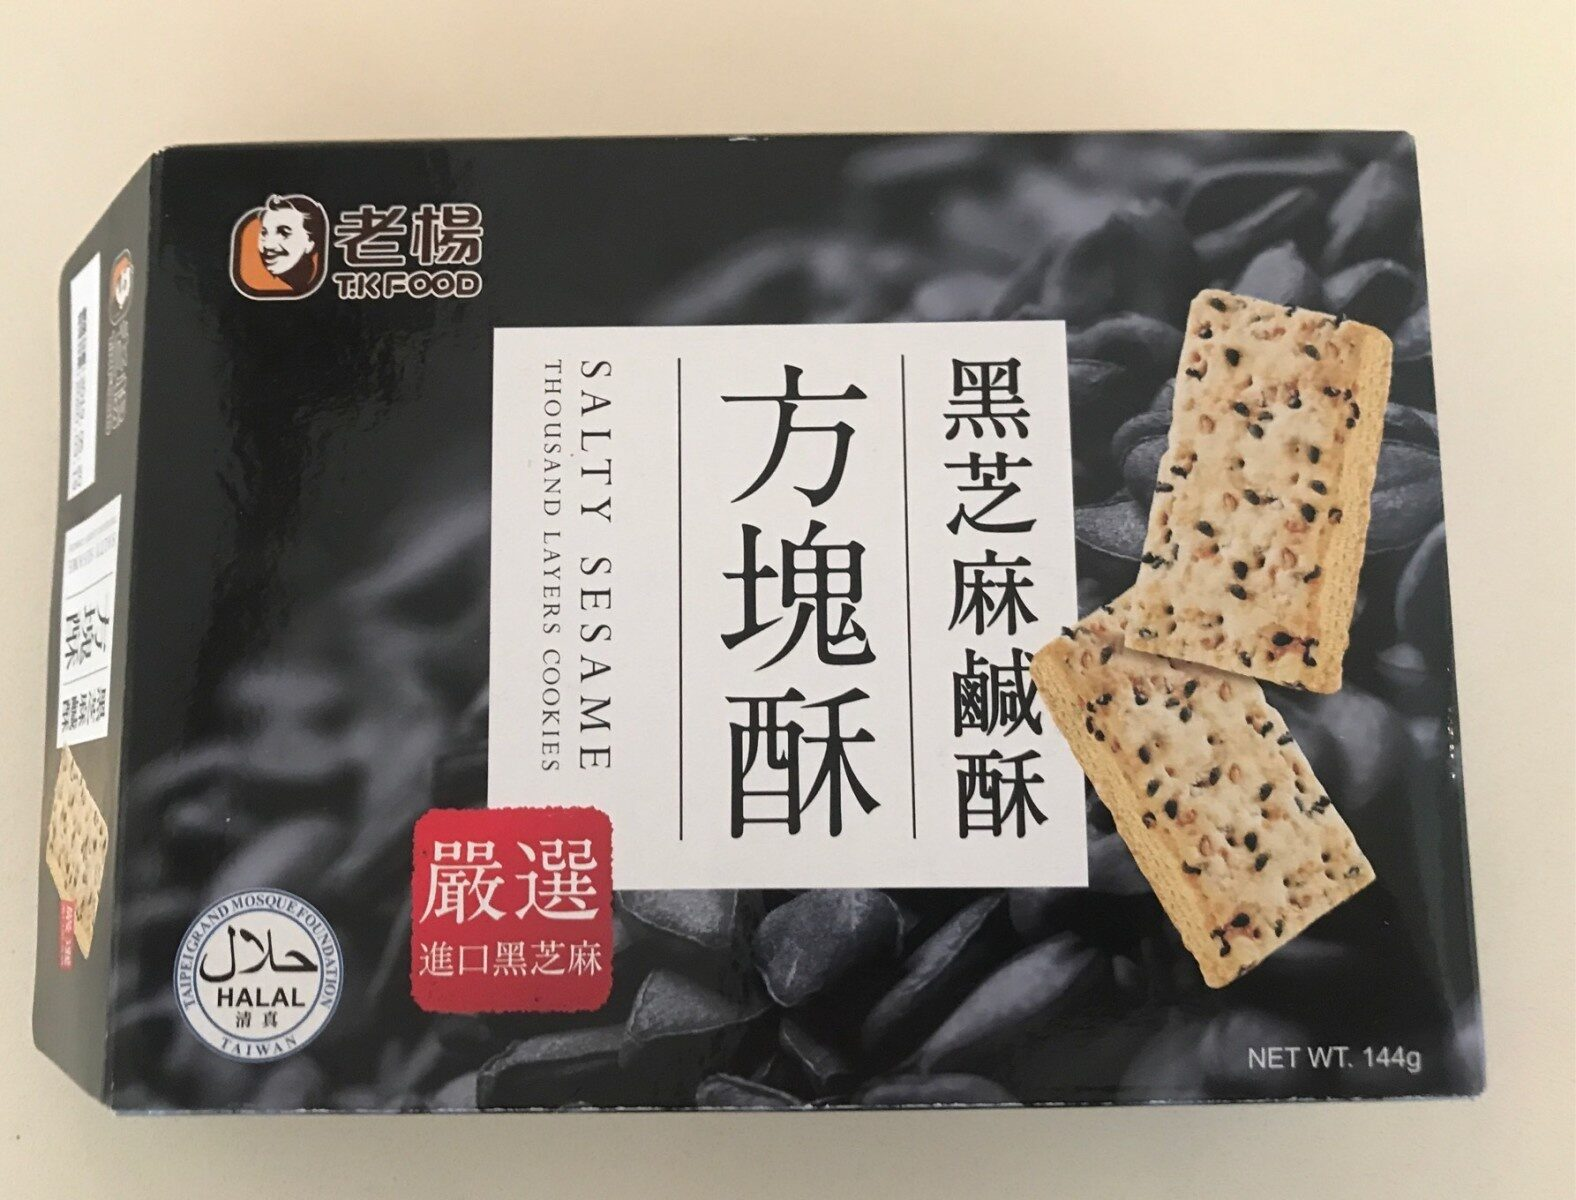 Salty Sesame - Thousand Layers Cookies - Product